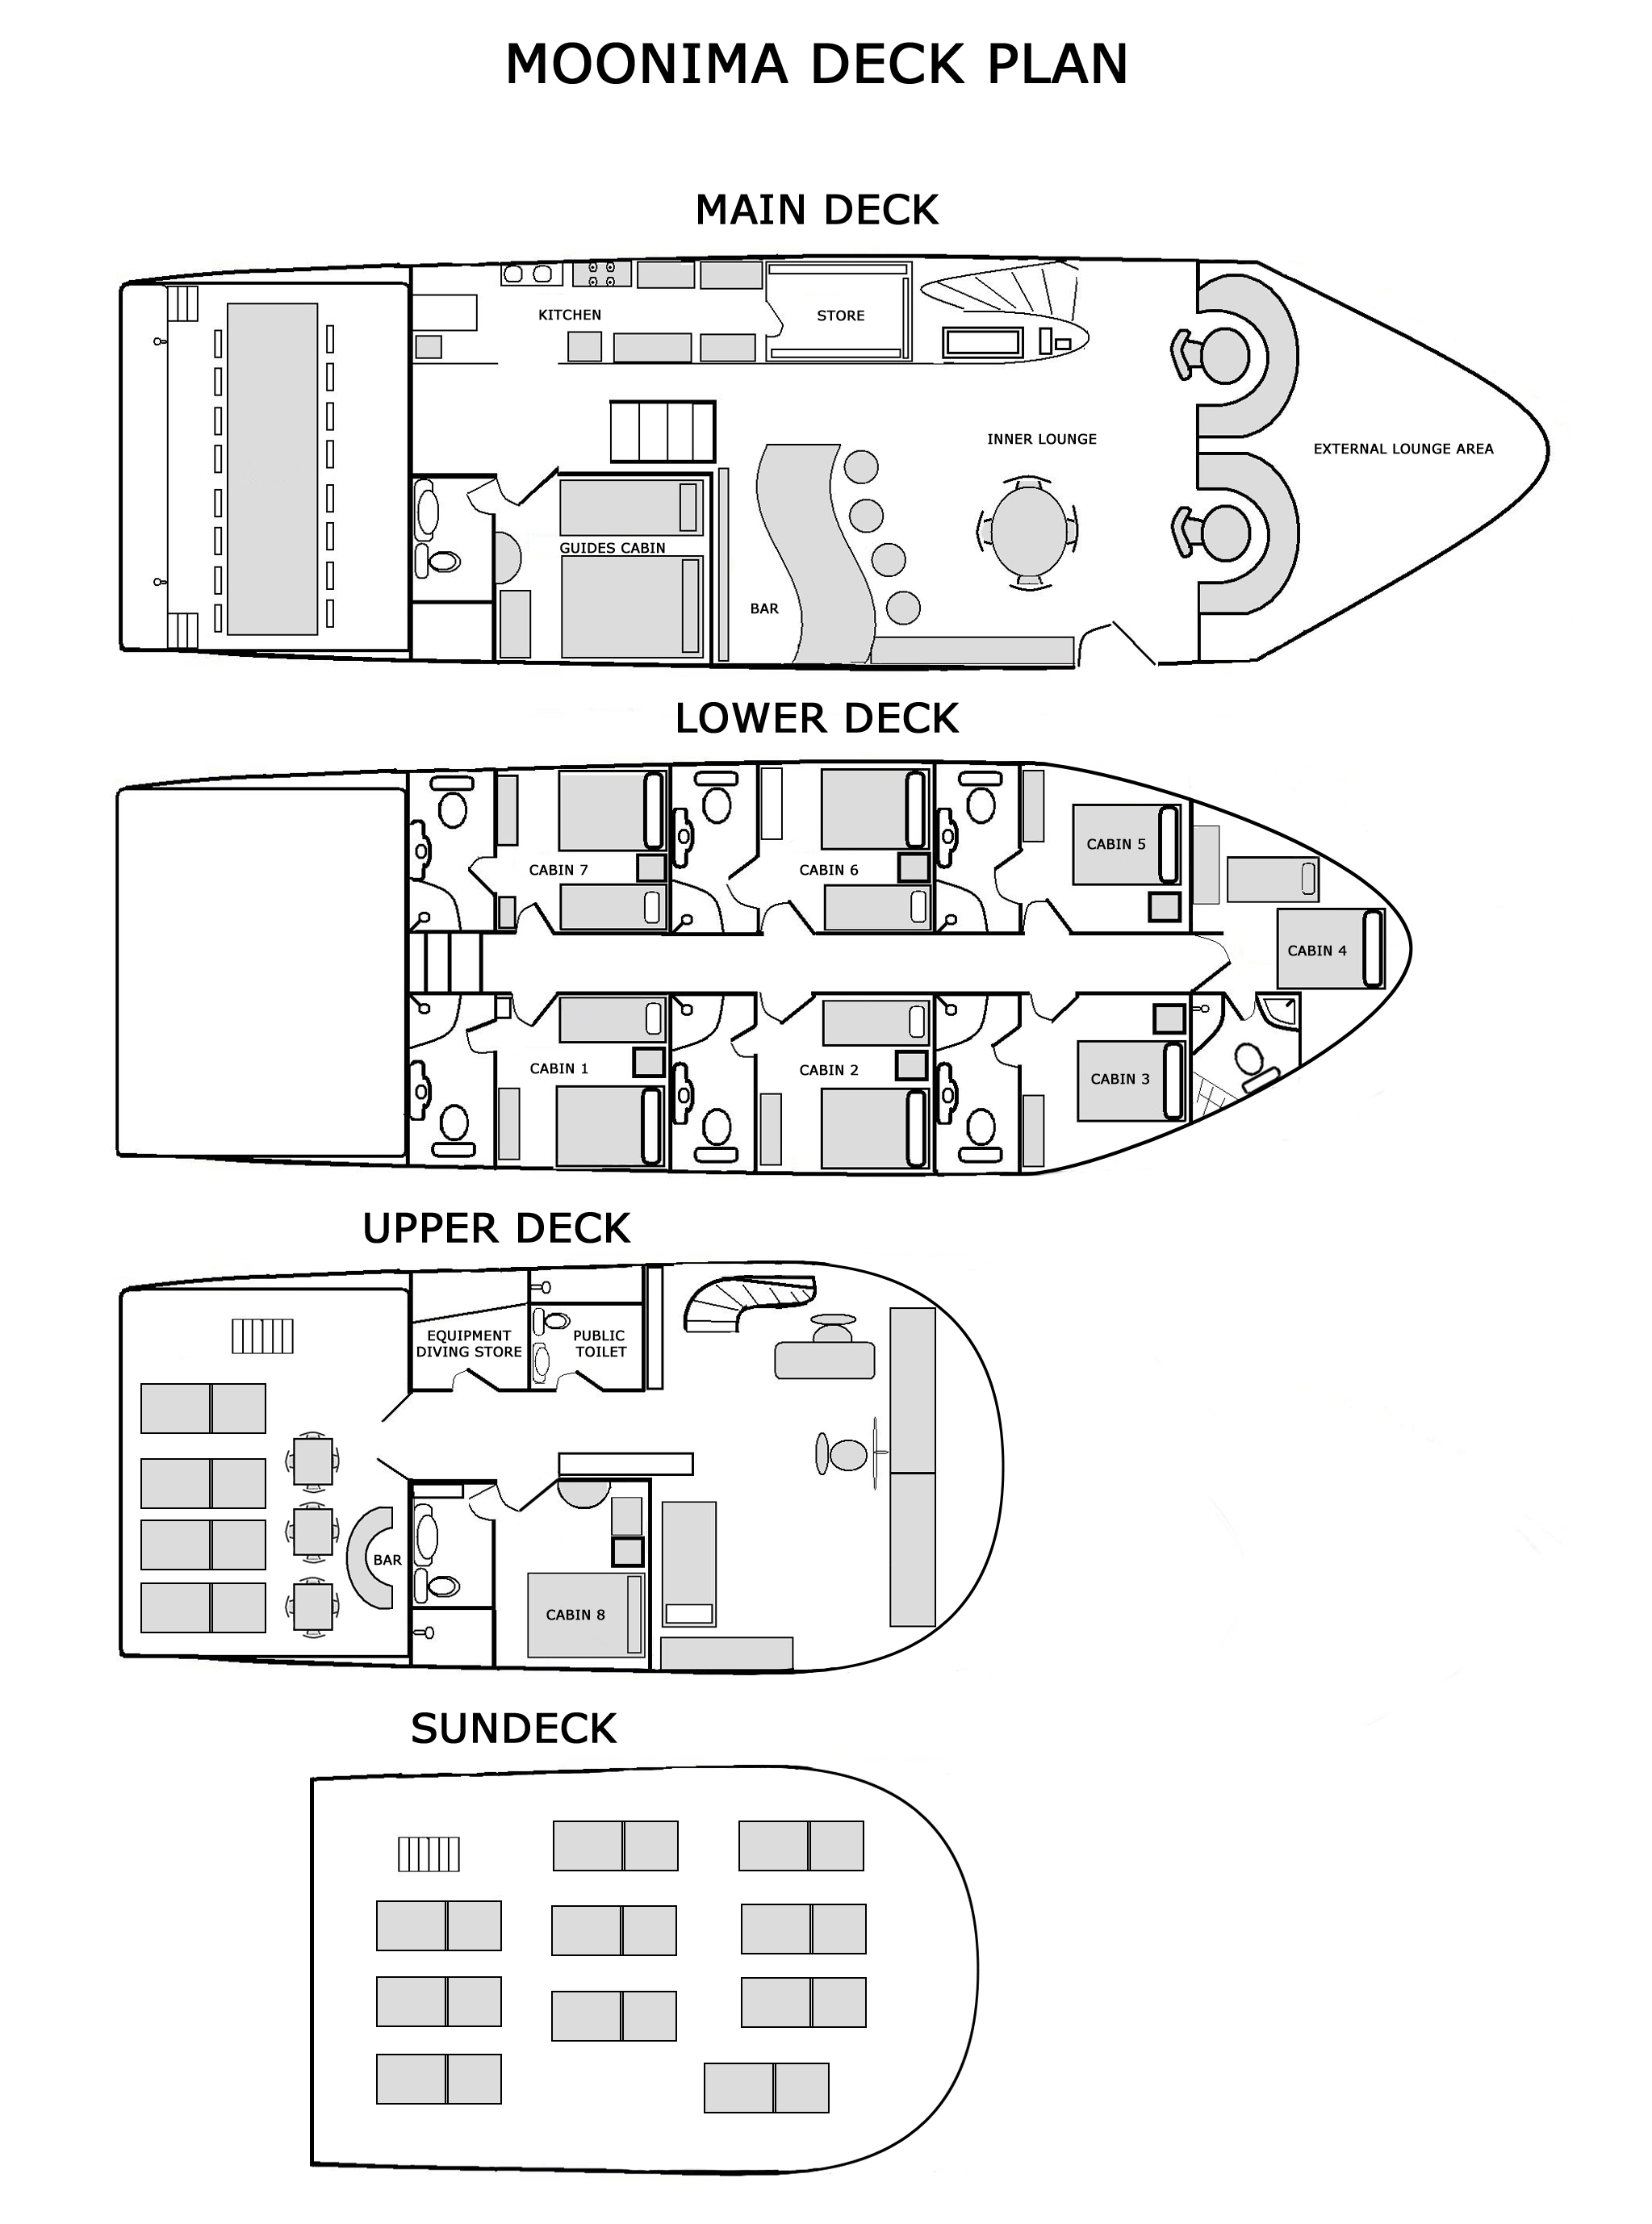 Moonima Liveaboard Deck Plan Grundriss